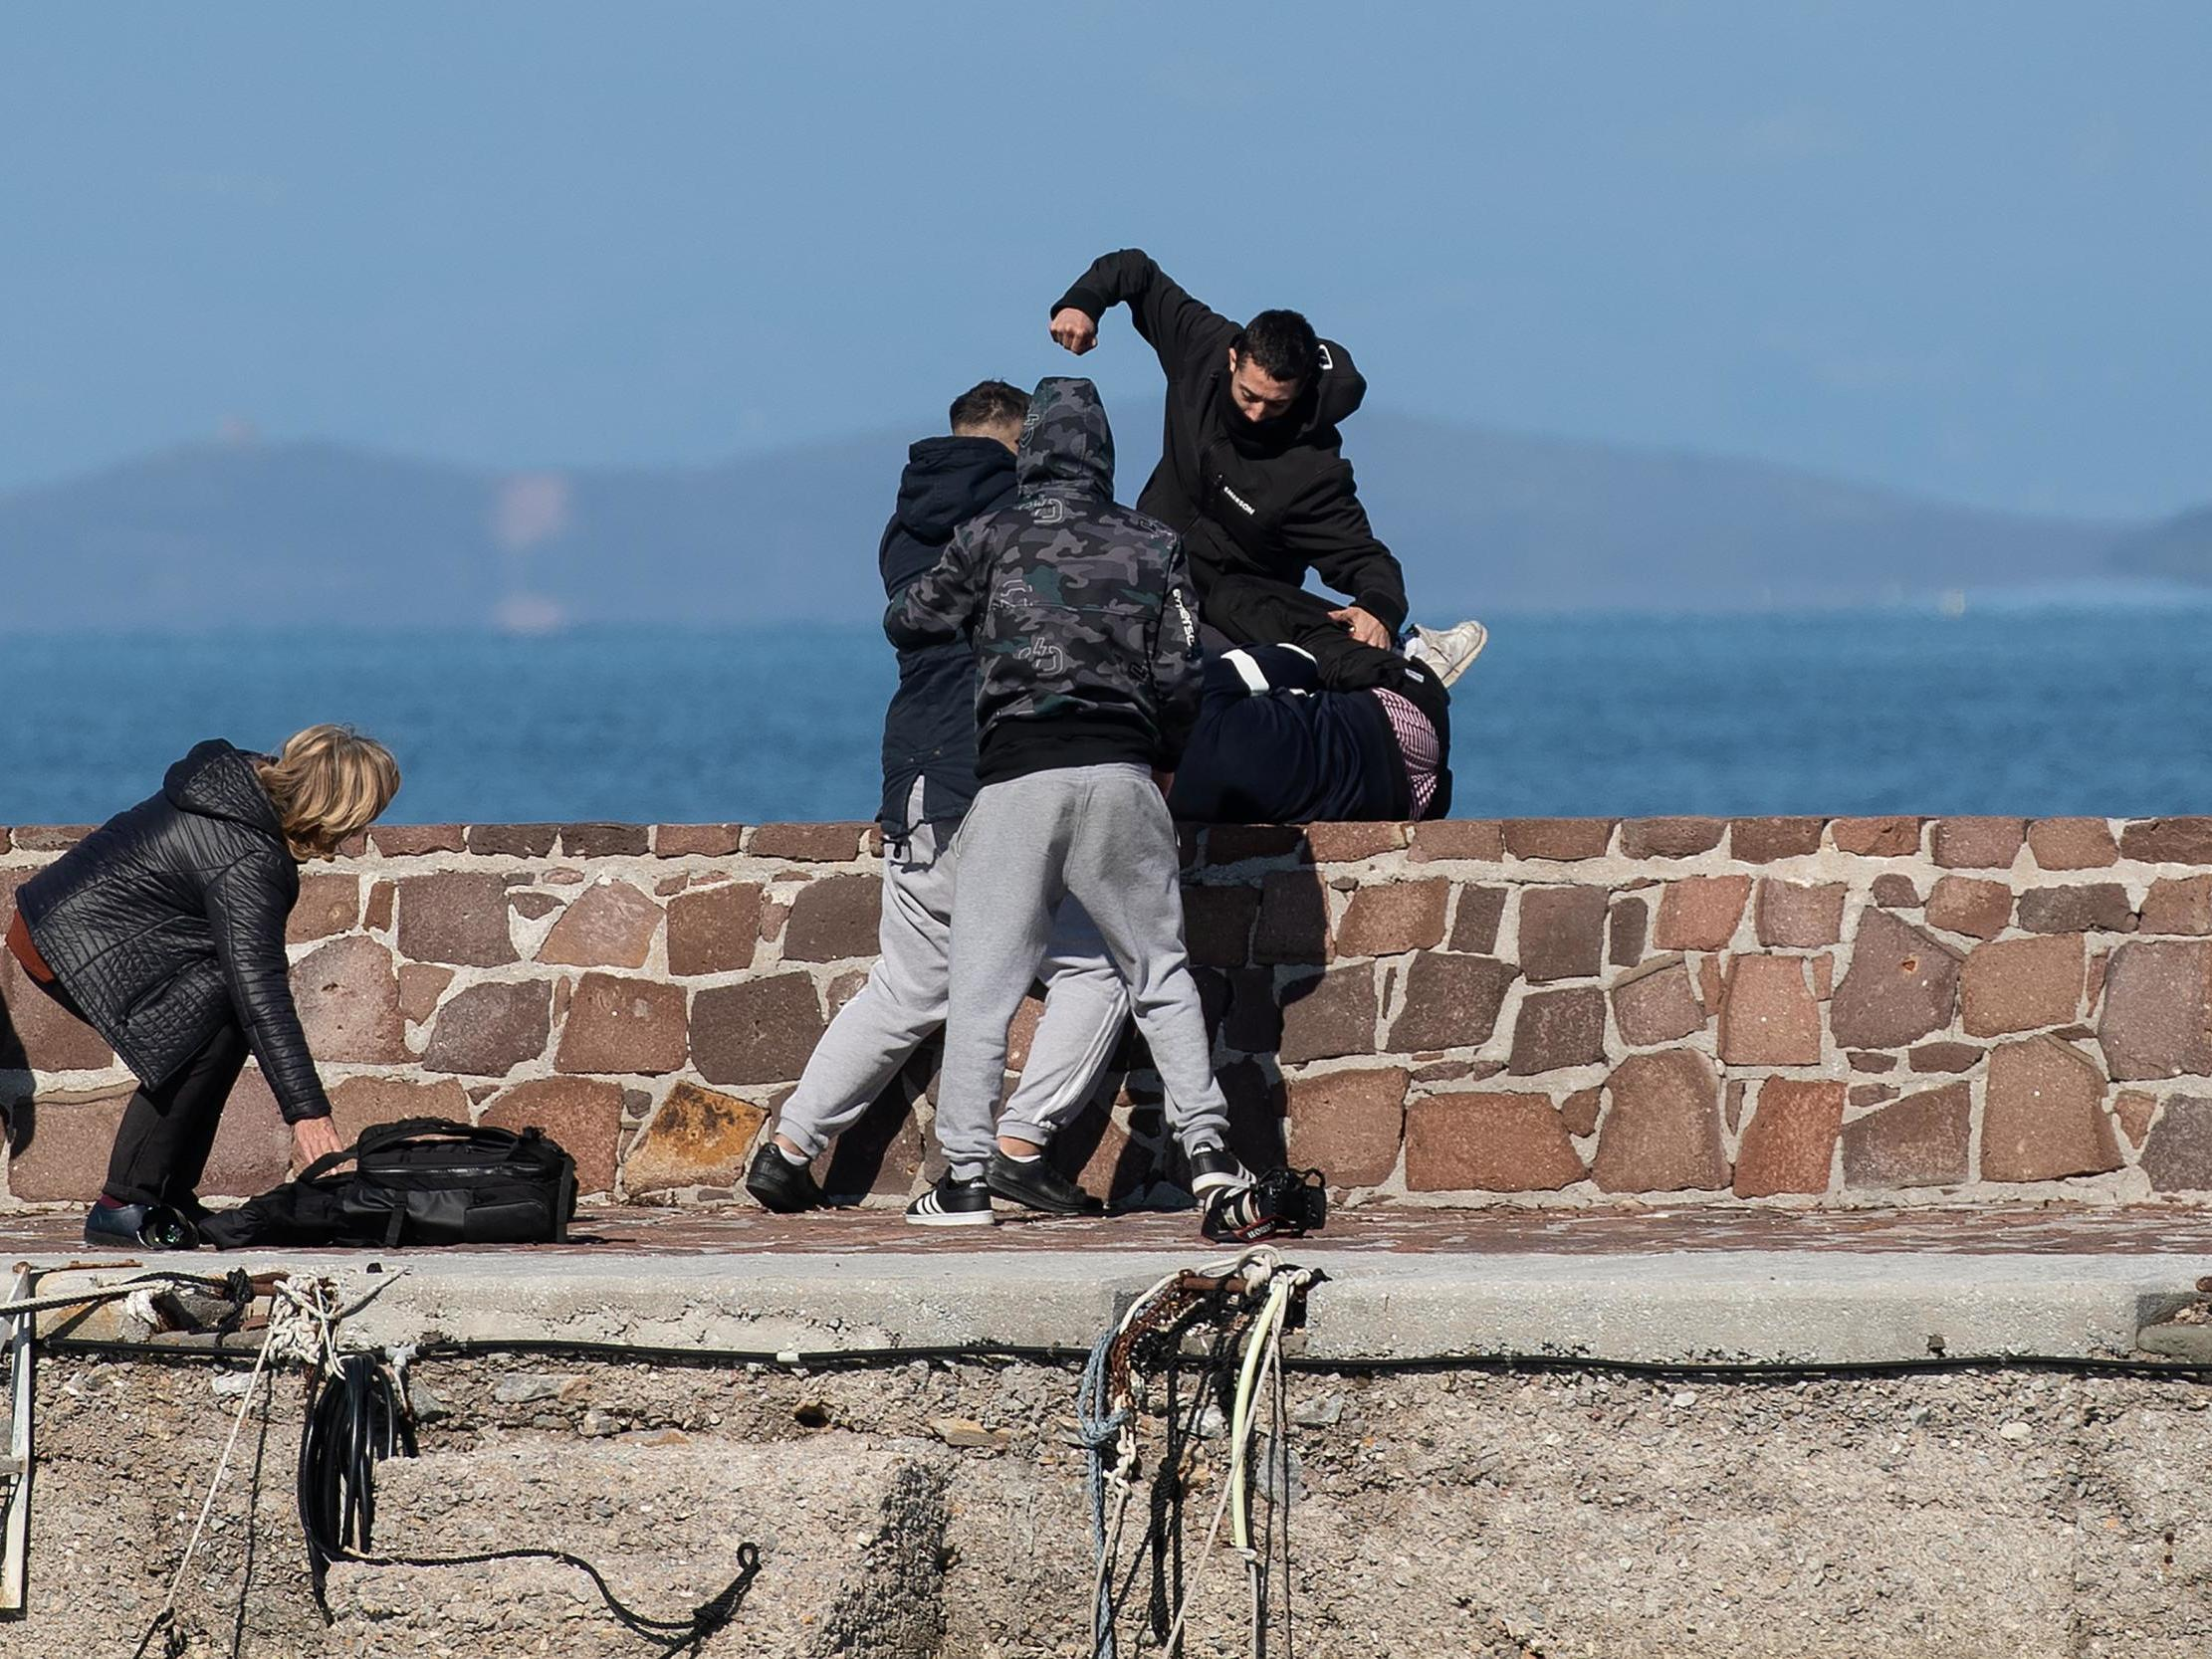 Locals attack journalists and try to stop migrants disembarking on Greek island